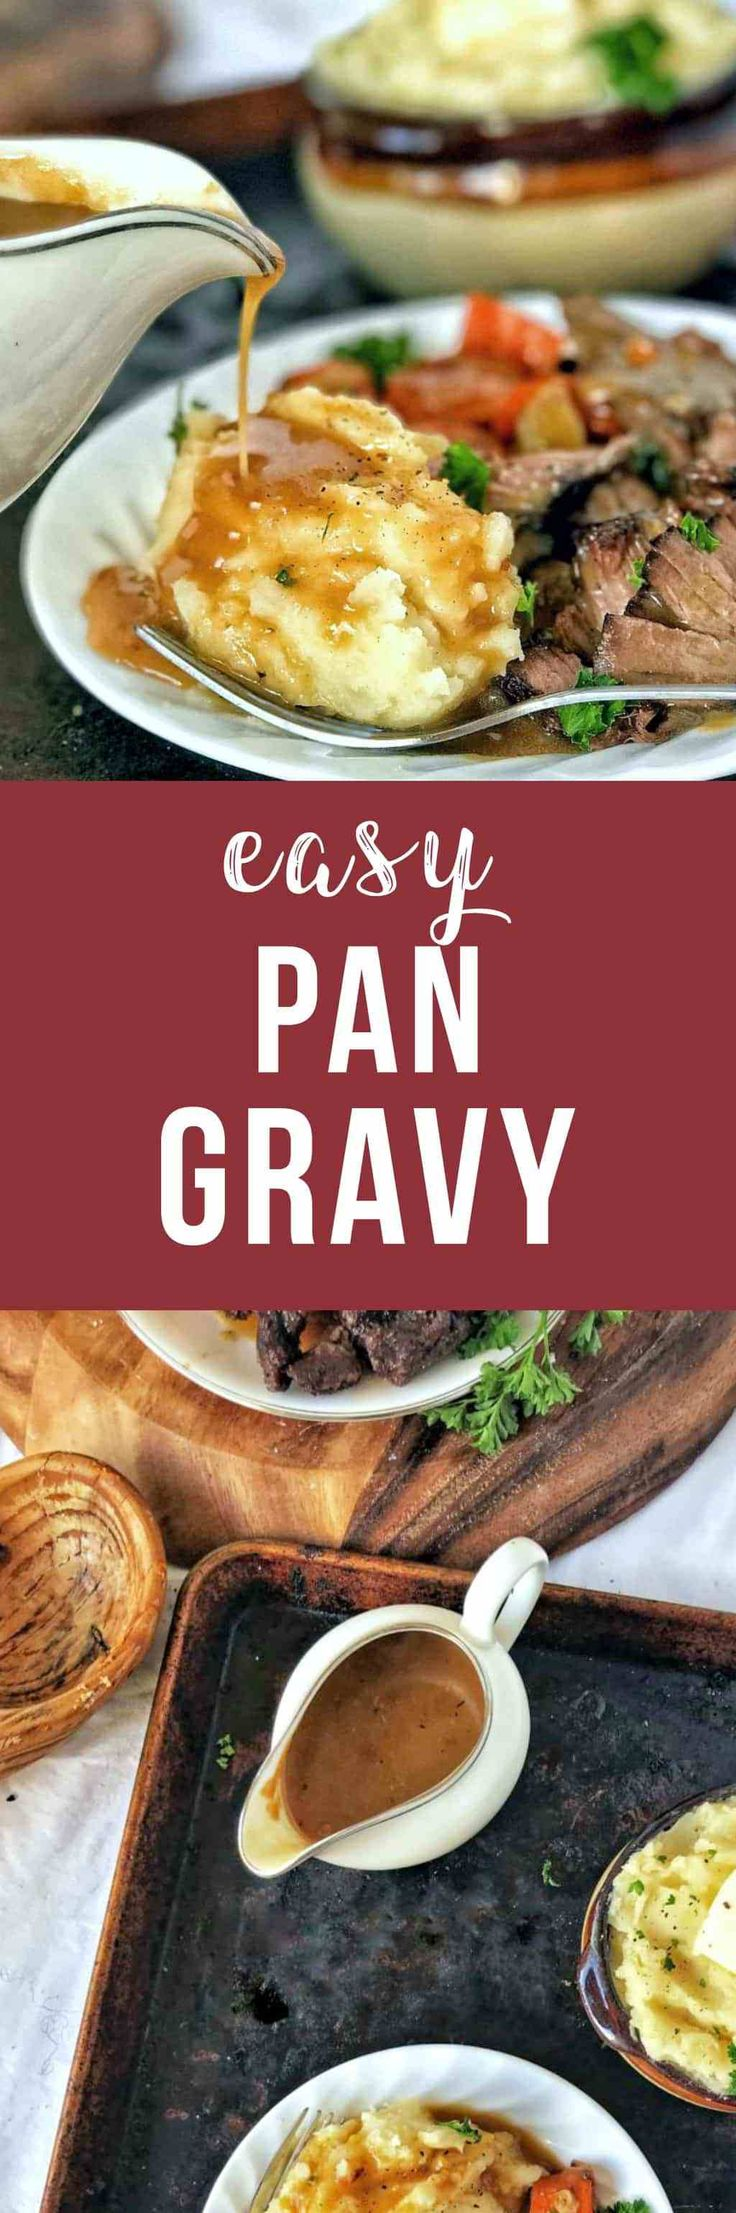 Pan drippings gravy is easy and amazingly flavorful, thanks to using the tasty bits from roasting a piece of meat. Just strain your veggies and aromatics, and the rest is quick and easy.